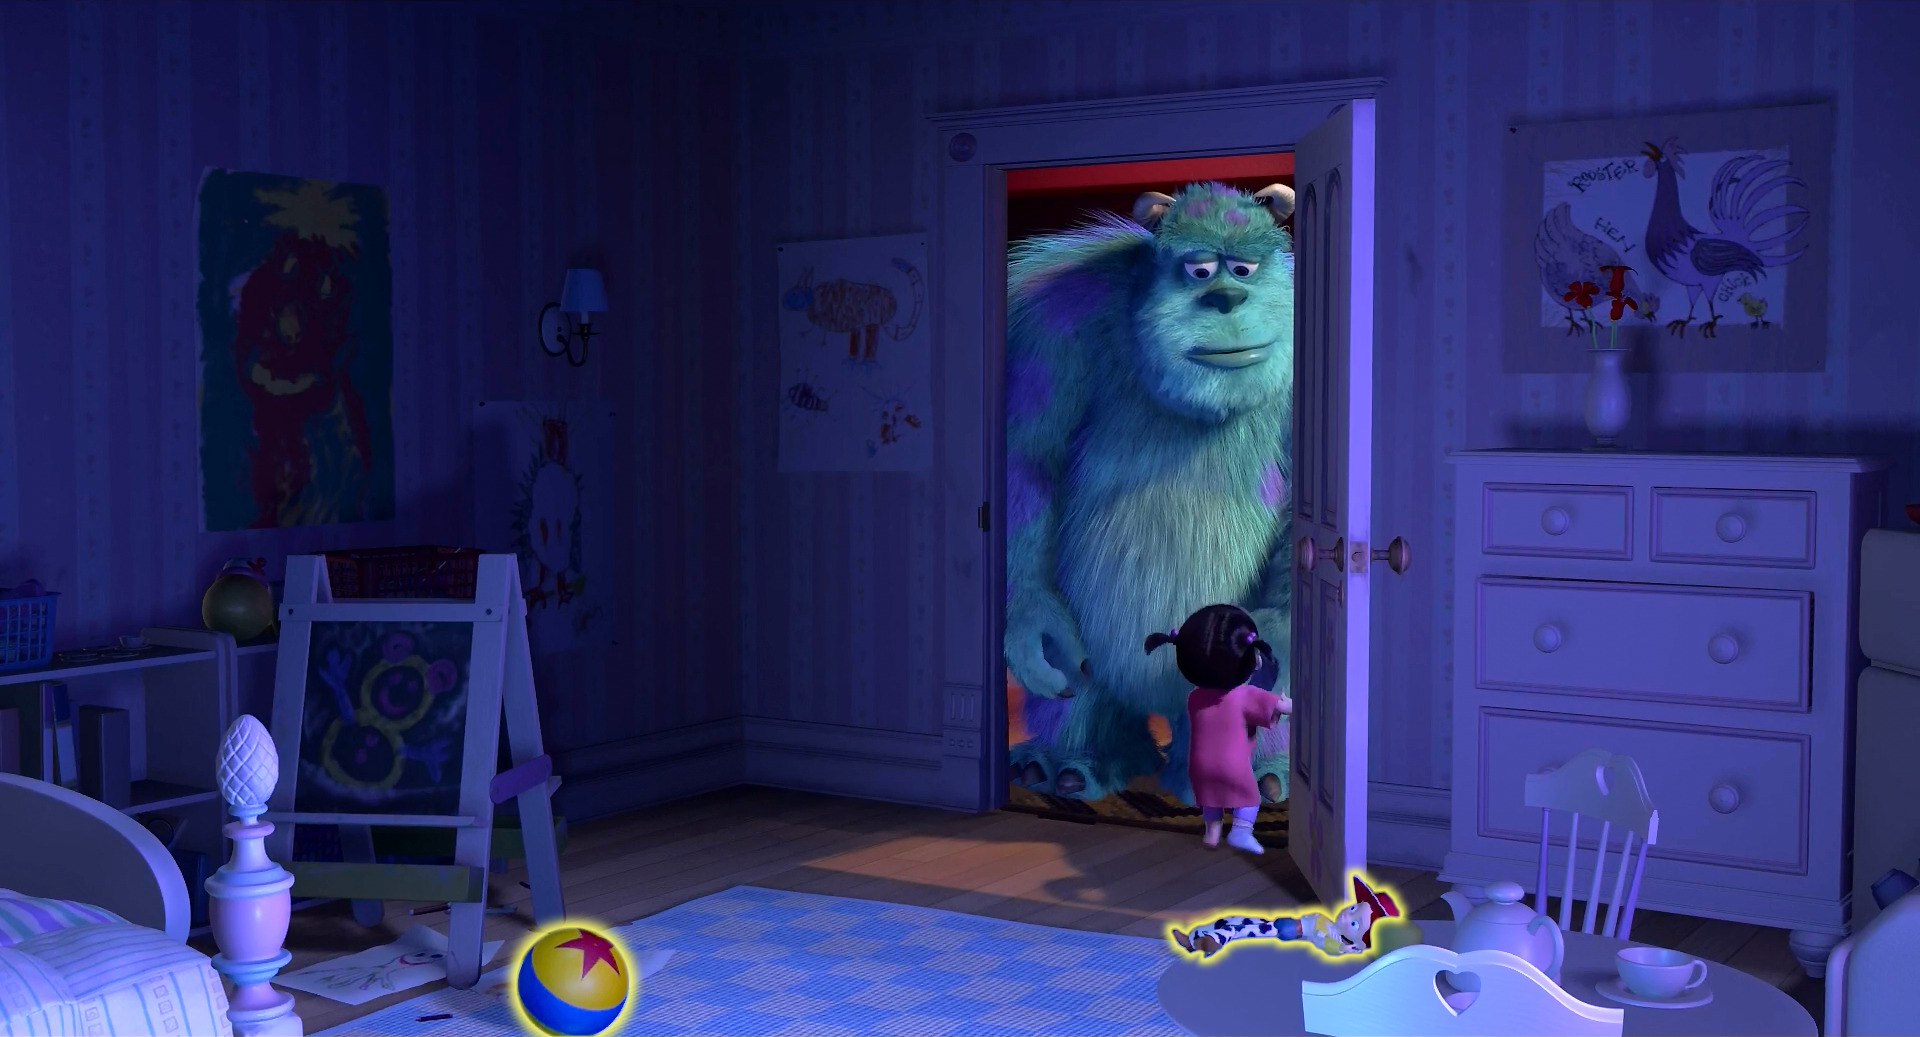 Pixar Cars Bedroom Wallpaper Monsters Inc Djbarchs